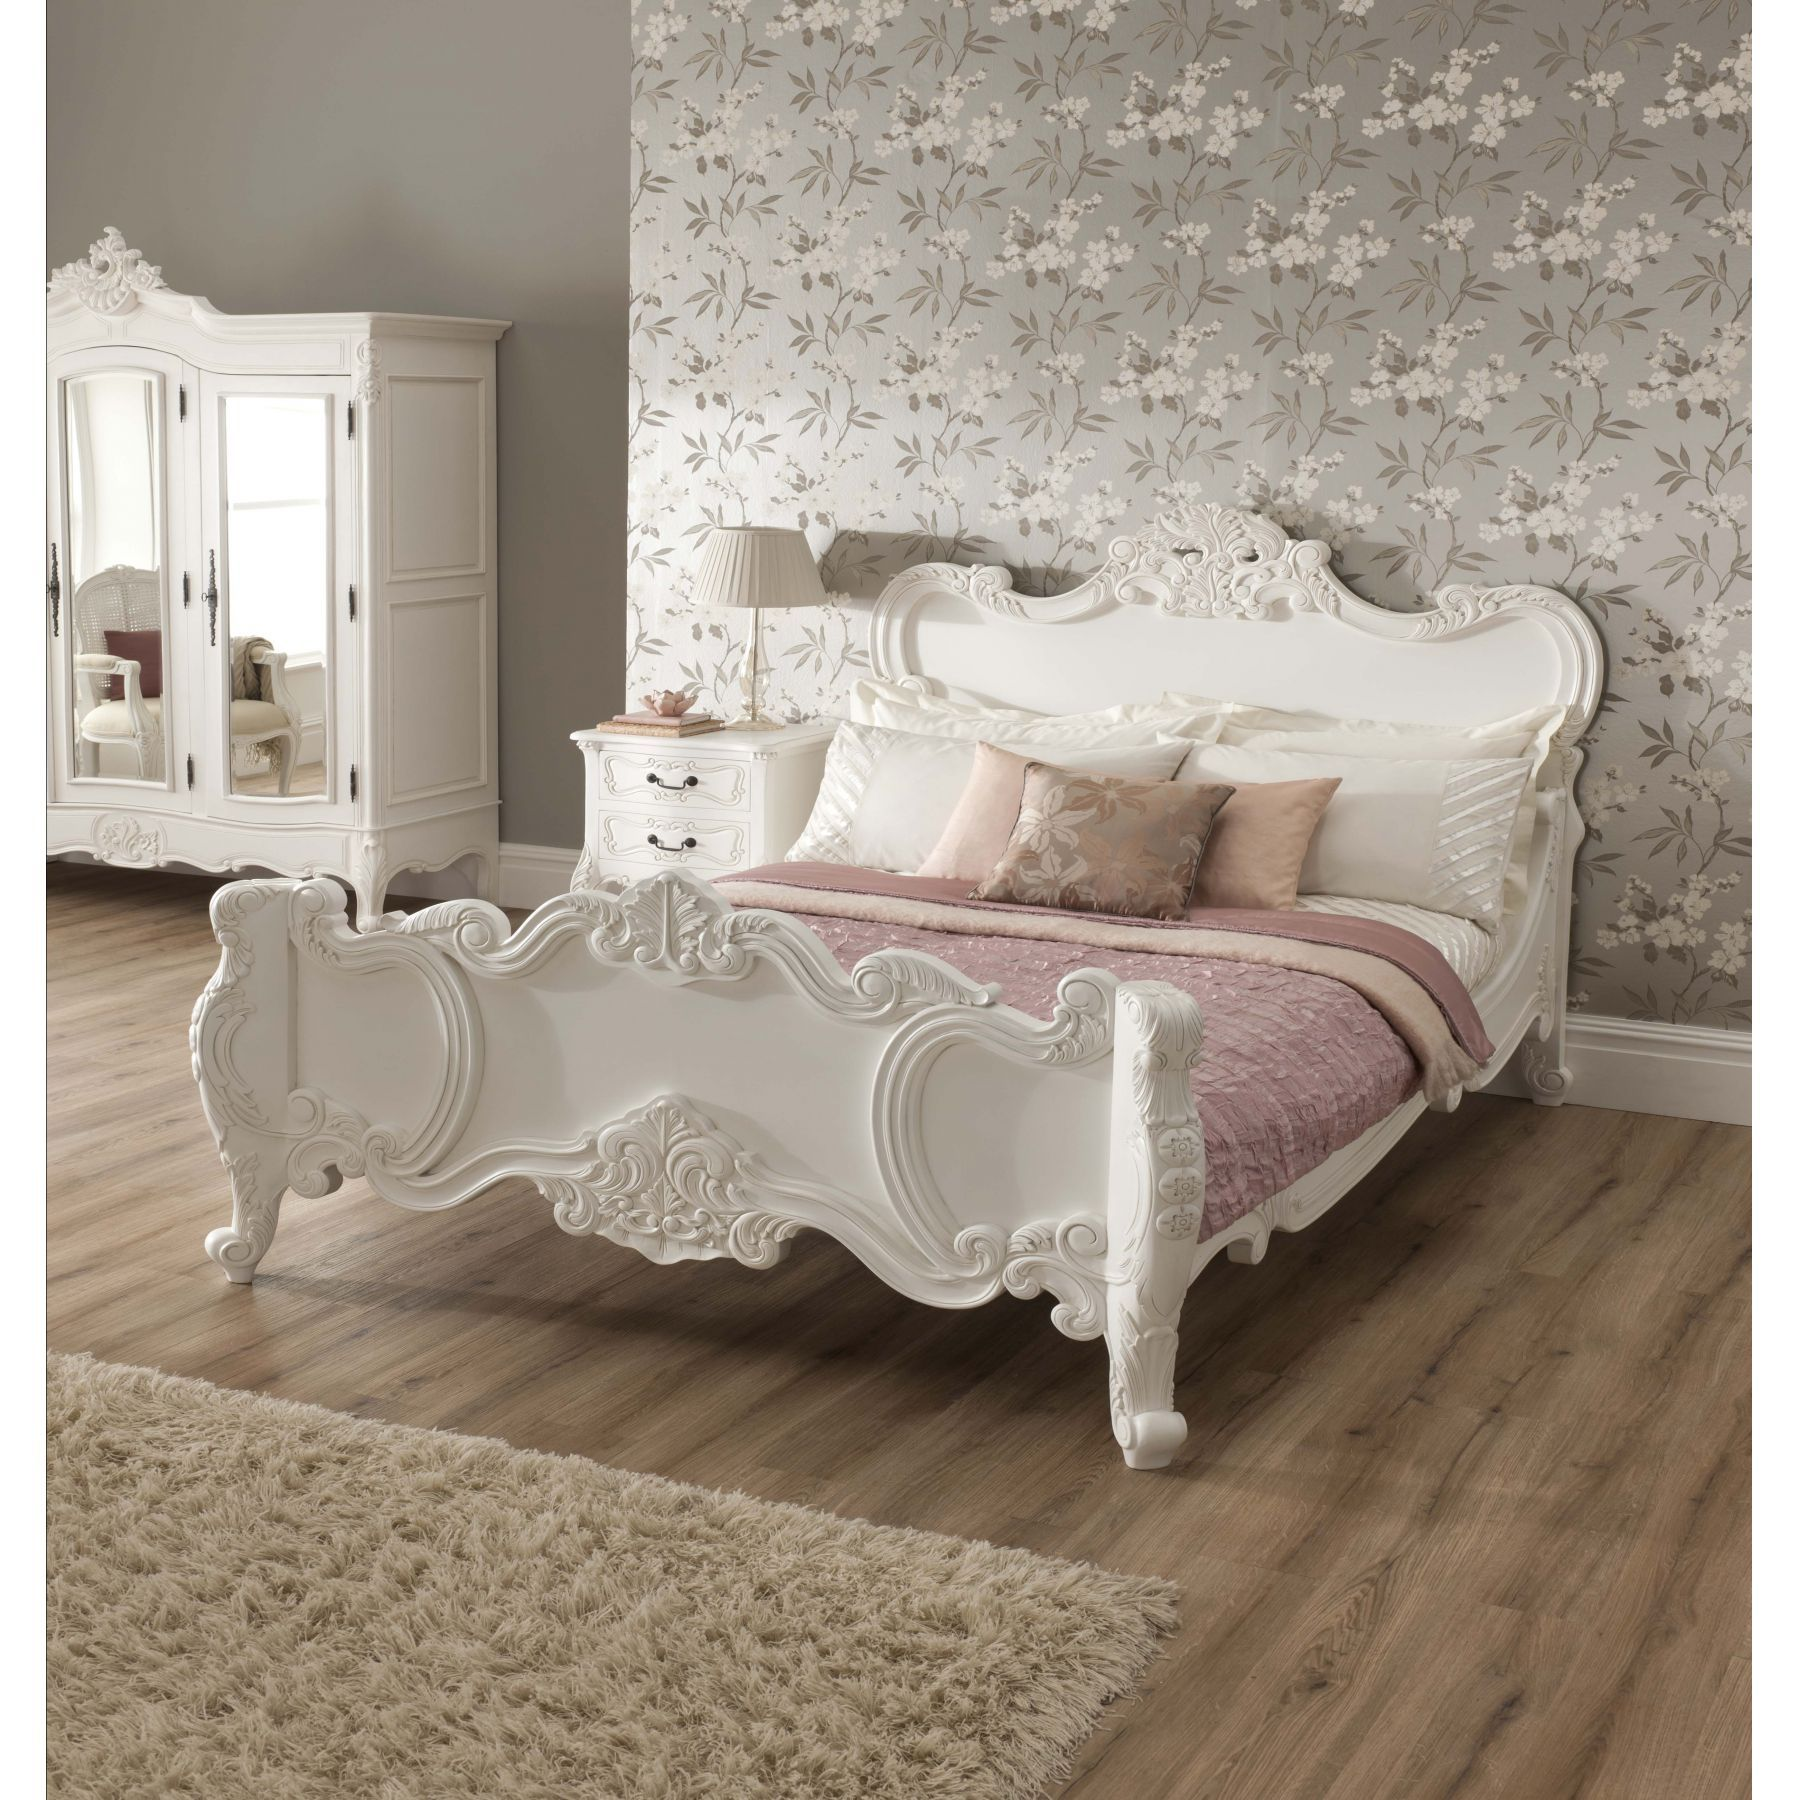 shabby chic furniture bedroom. Shabby Chic Beach Bedroom - Google Search Furniture H